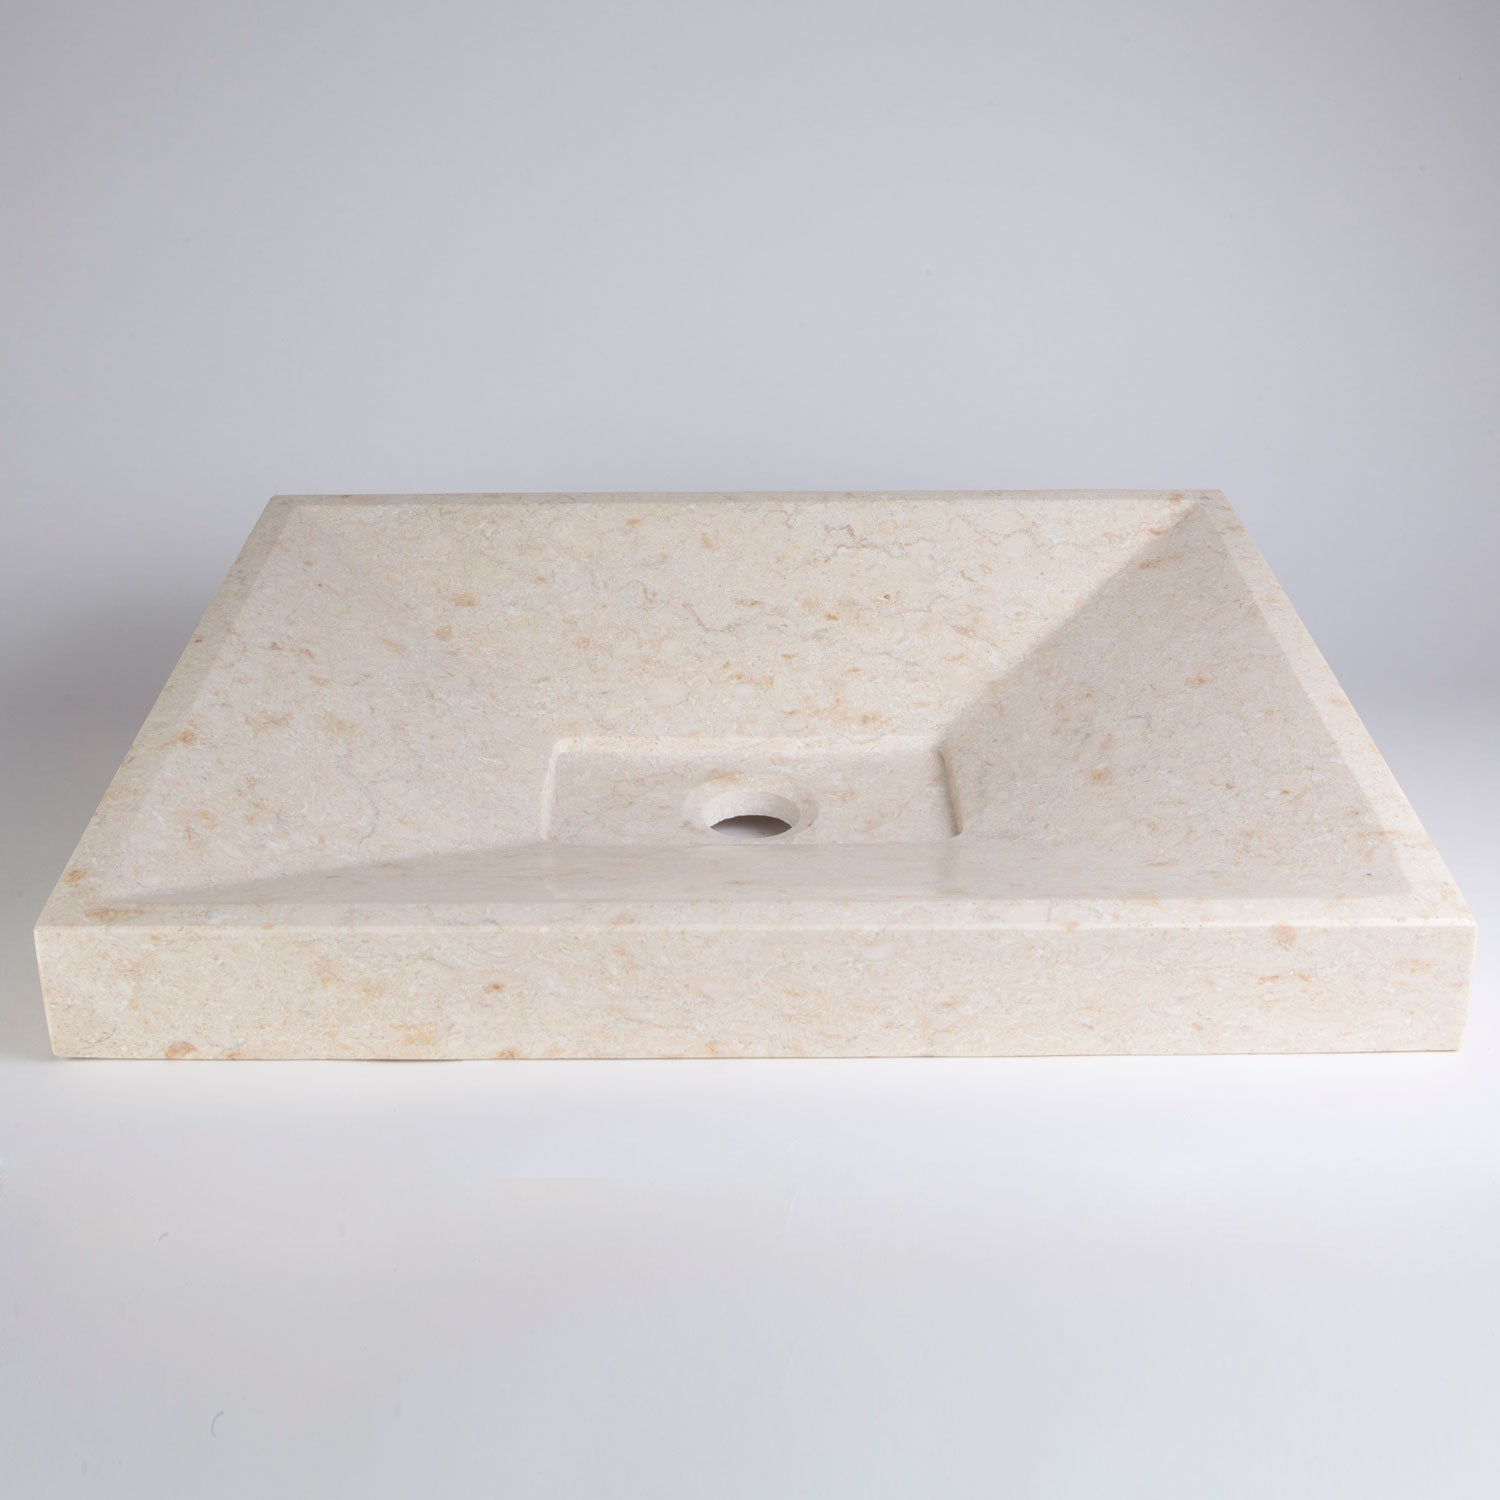 SYNC Drop-In Vessel Sink, Crema Marfil Marble